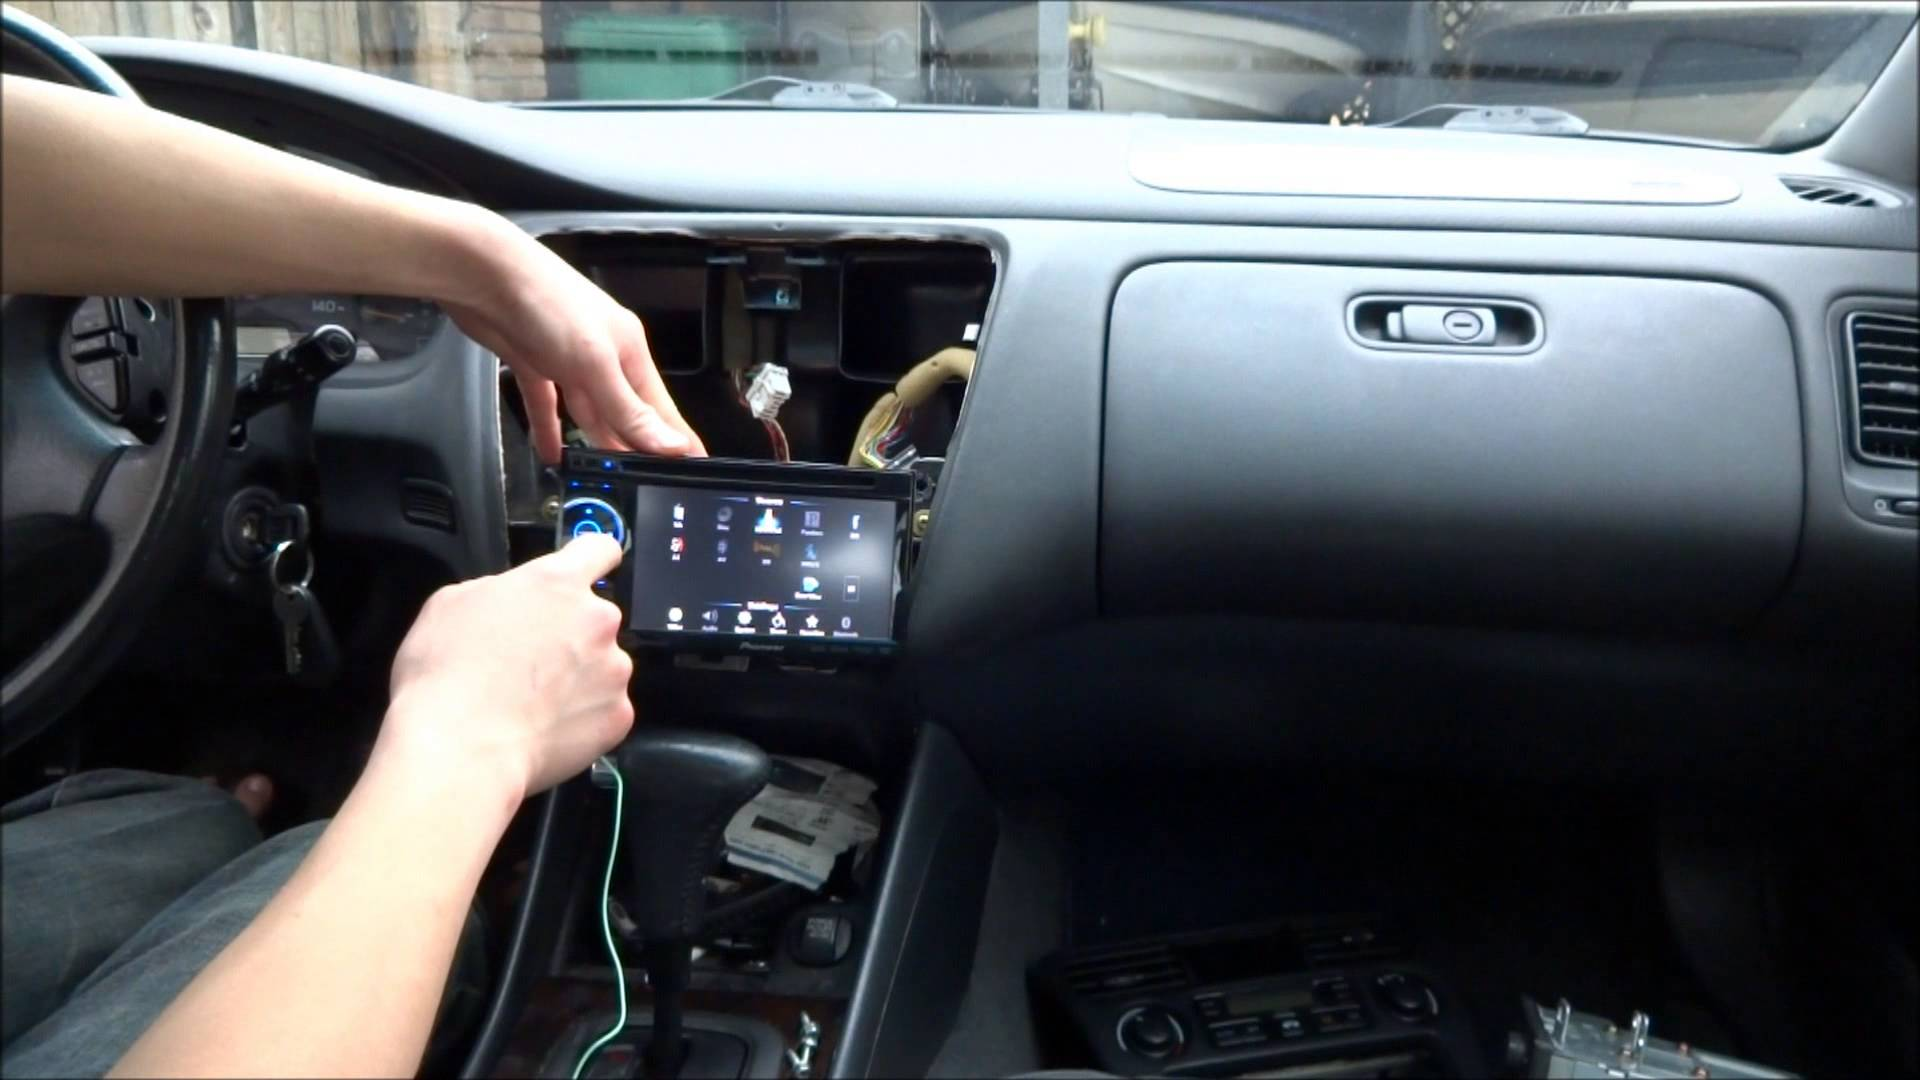 power acoustik wiring diagram common mistakes made when installing a car sound system  common mistakes made when installing a car sound system